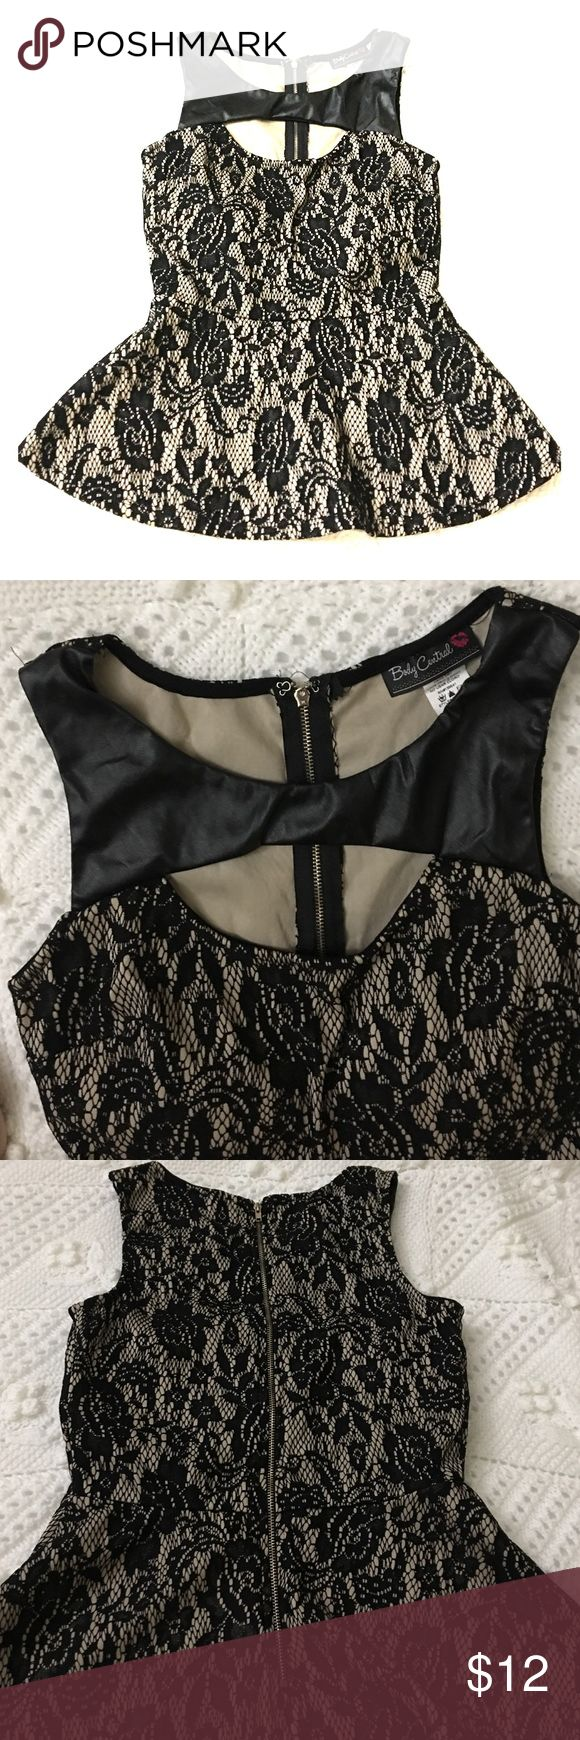 Sexy Nude Black lace peplum sz small Sexy Nude with black lace peplum top. Faux leather shoulders with cut out in front. Gold exposed zipper up back. And built in bra cups. Size small. Worn once Tops